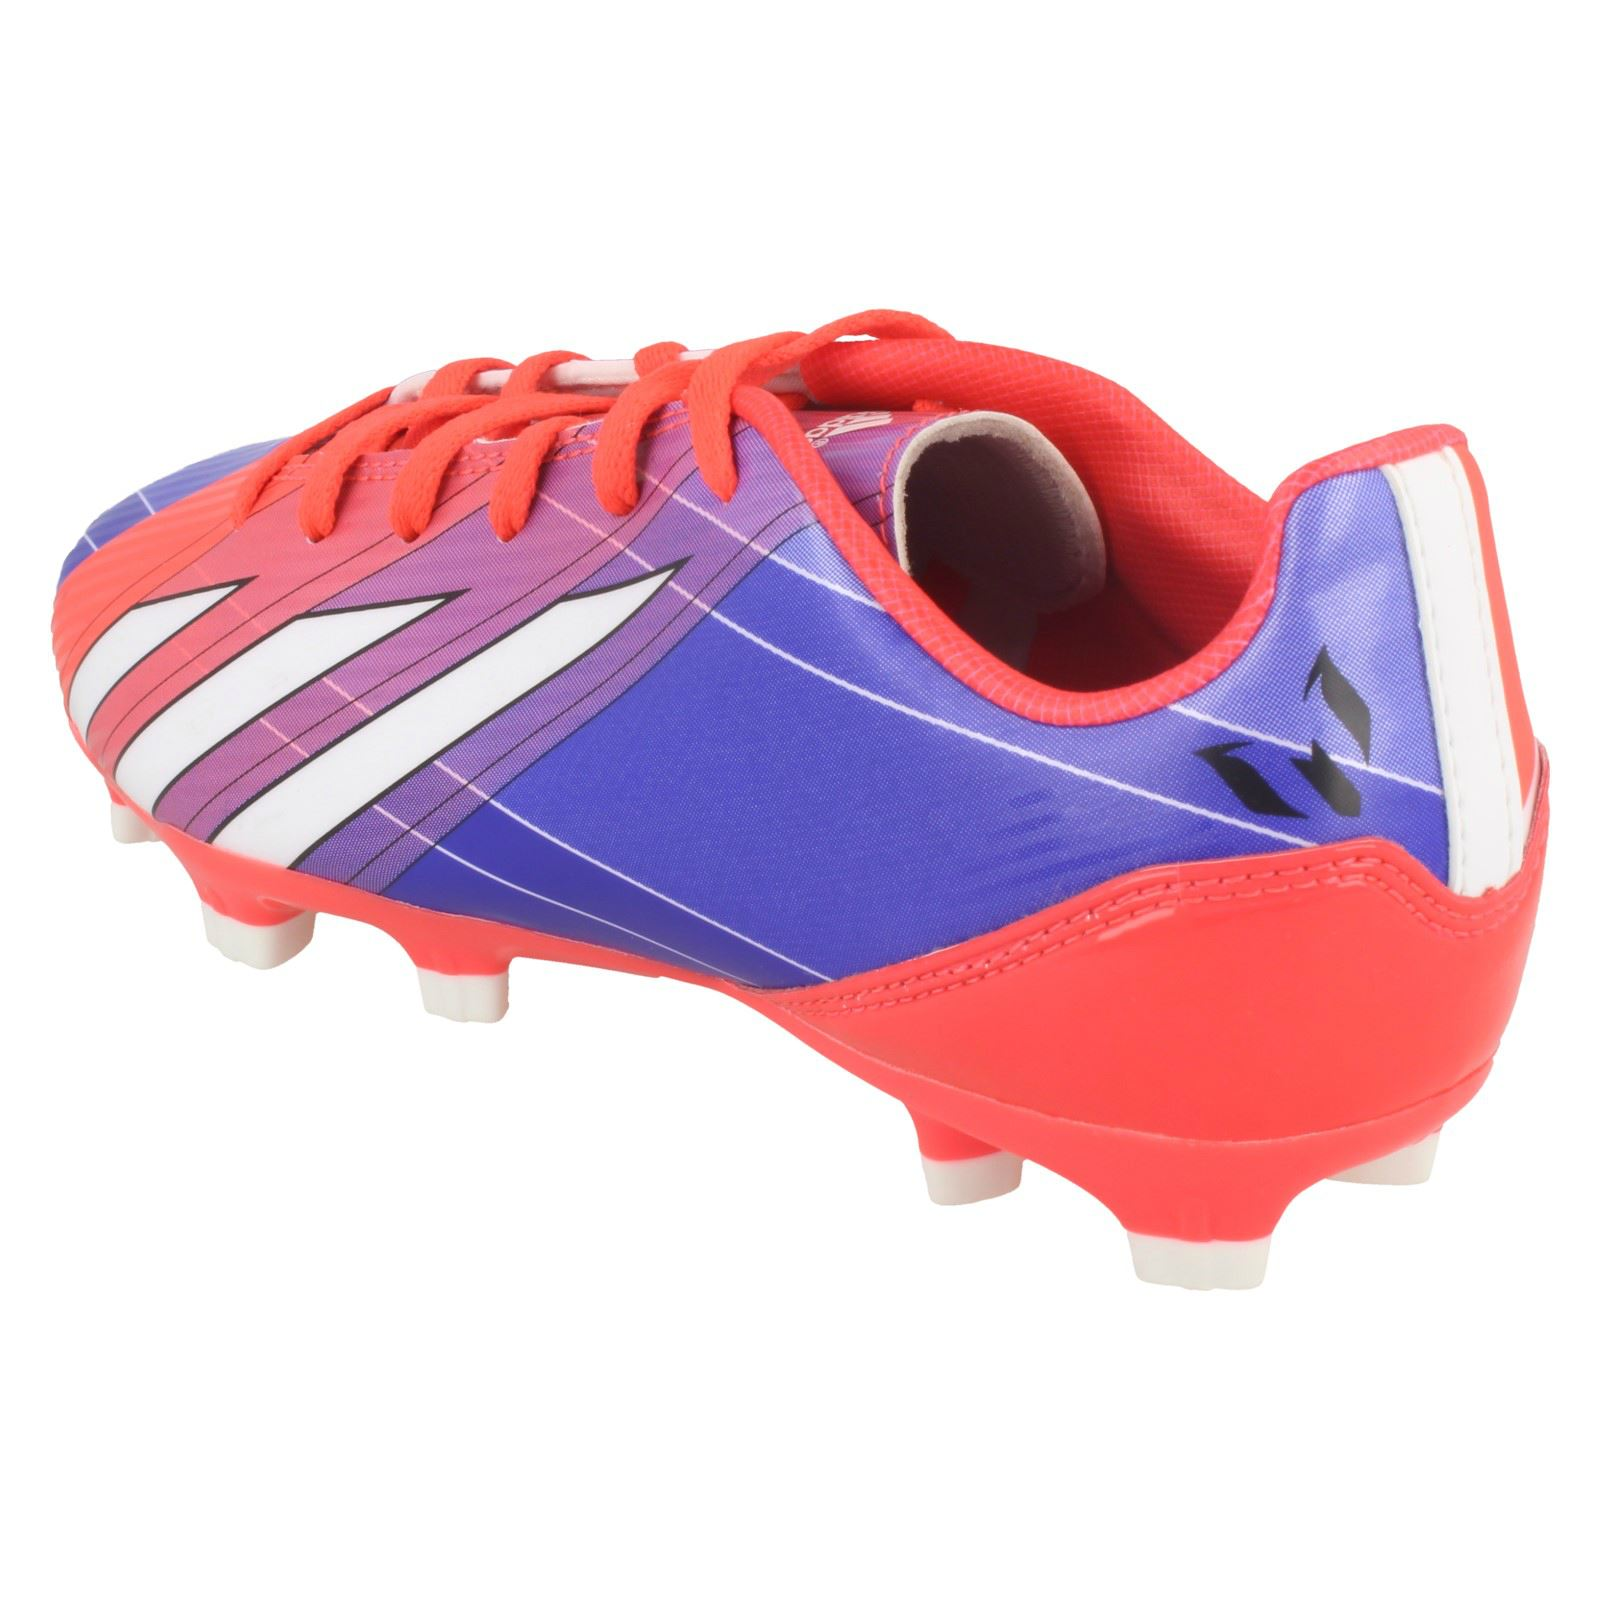 ... Football BOOTS Soccer Shoes Messi UK 9 G95011 9. About this product.  Picture 1 of 10  Picture 2 of 10  Picture 3 of 10  Picture 4 of 10 3dd7c070a8694